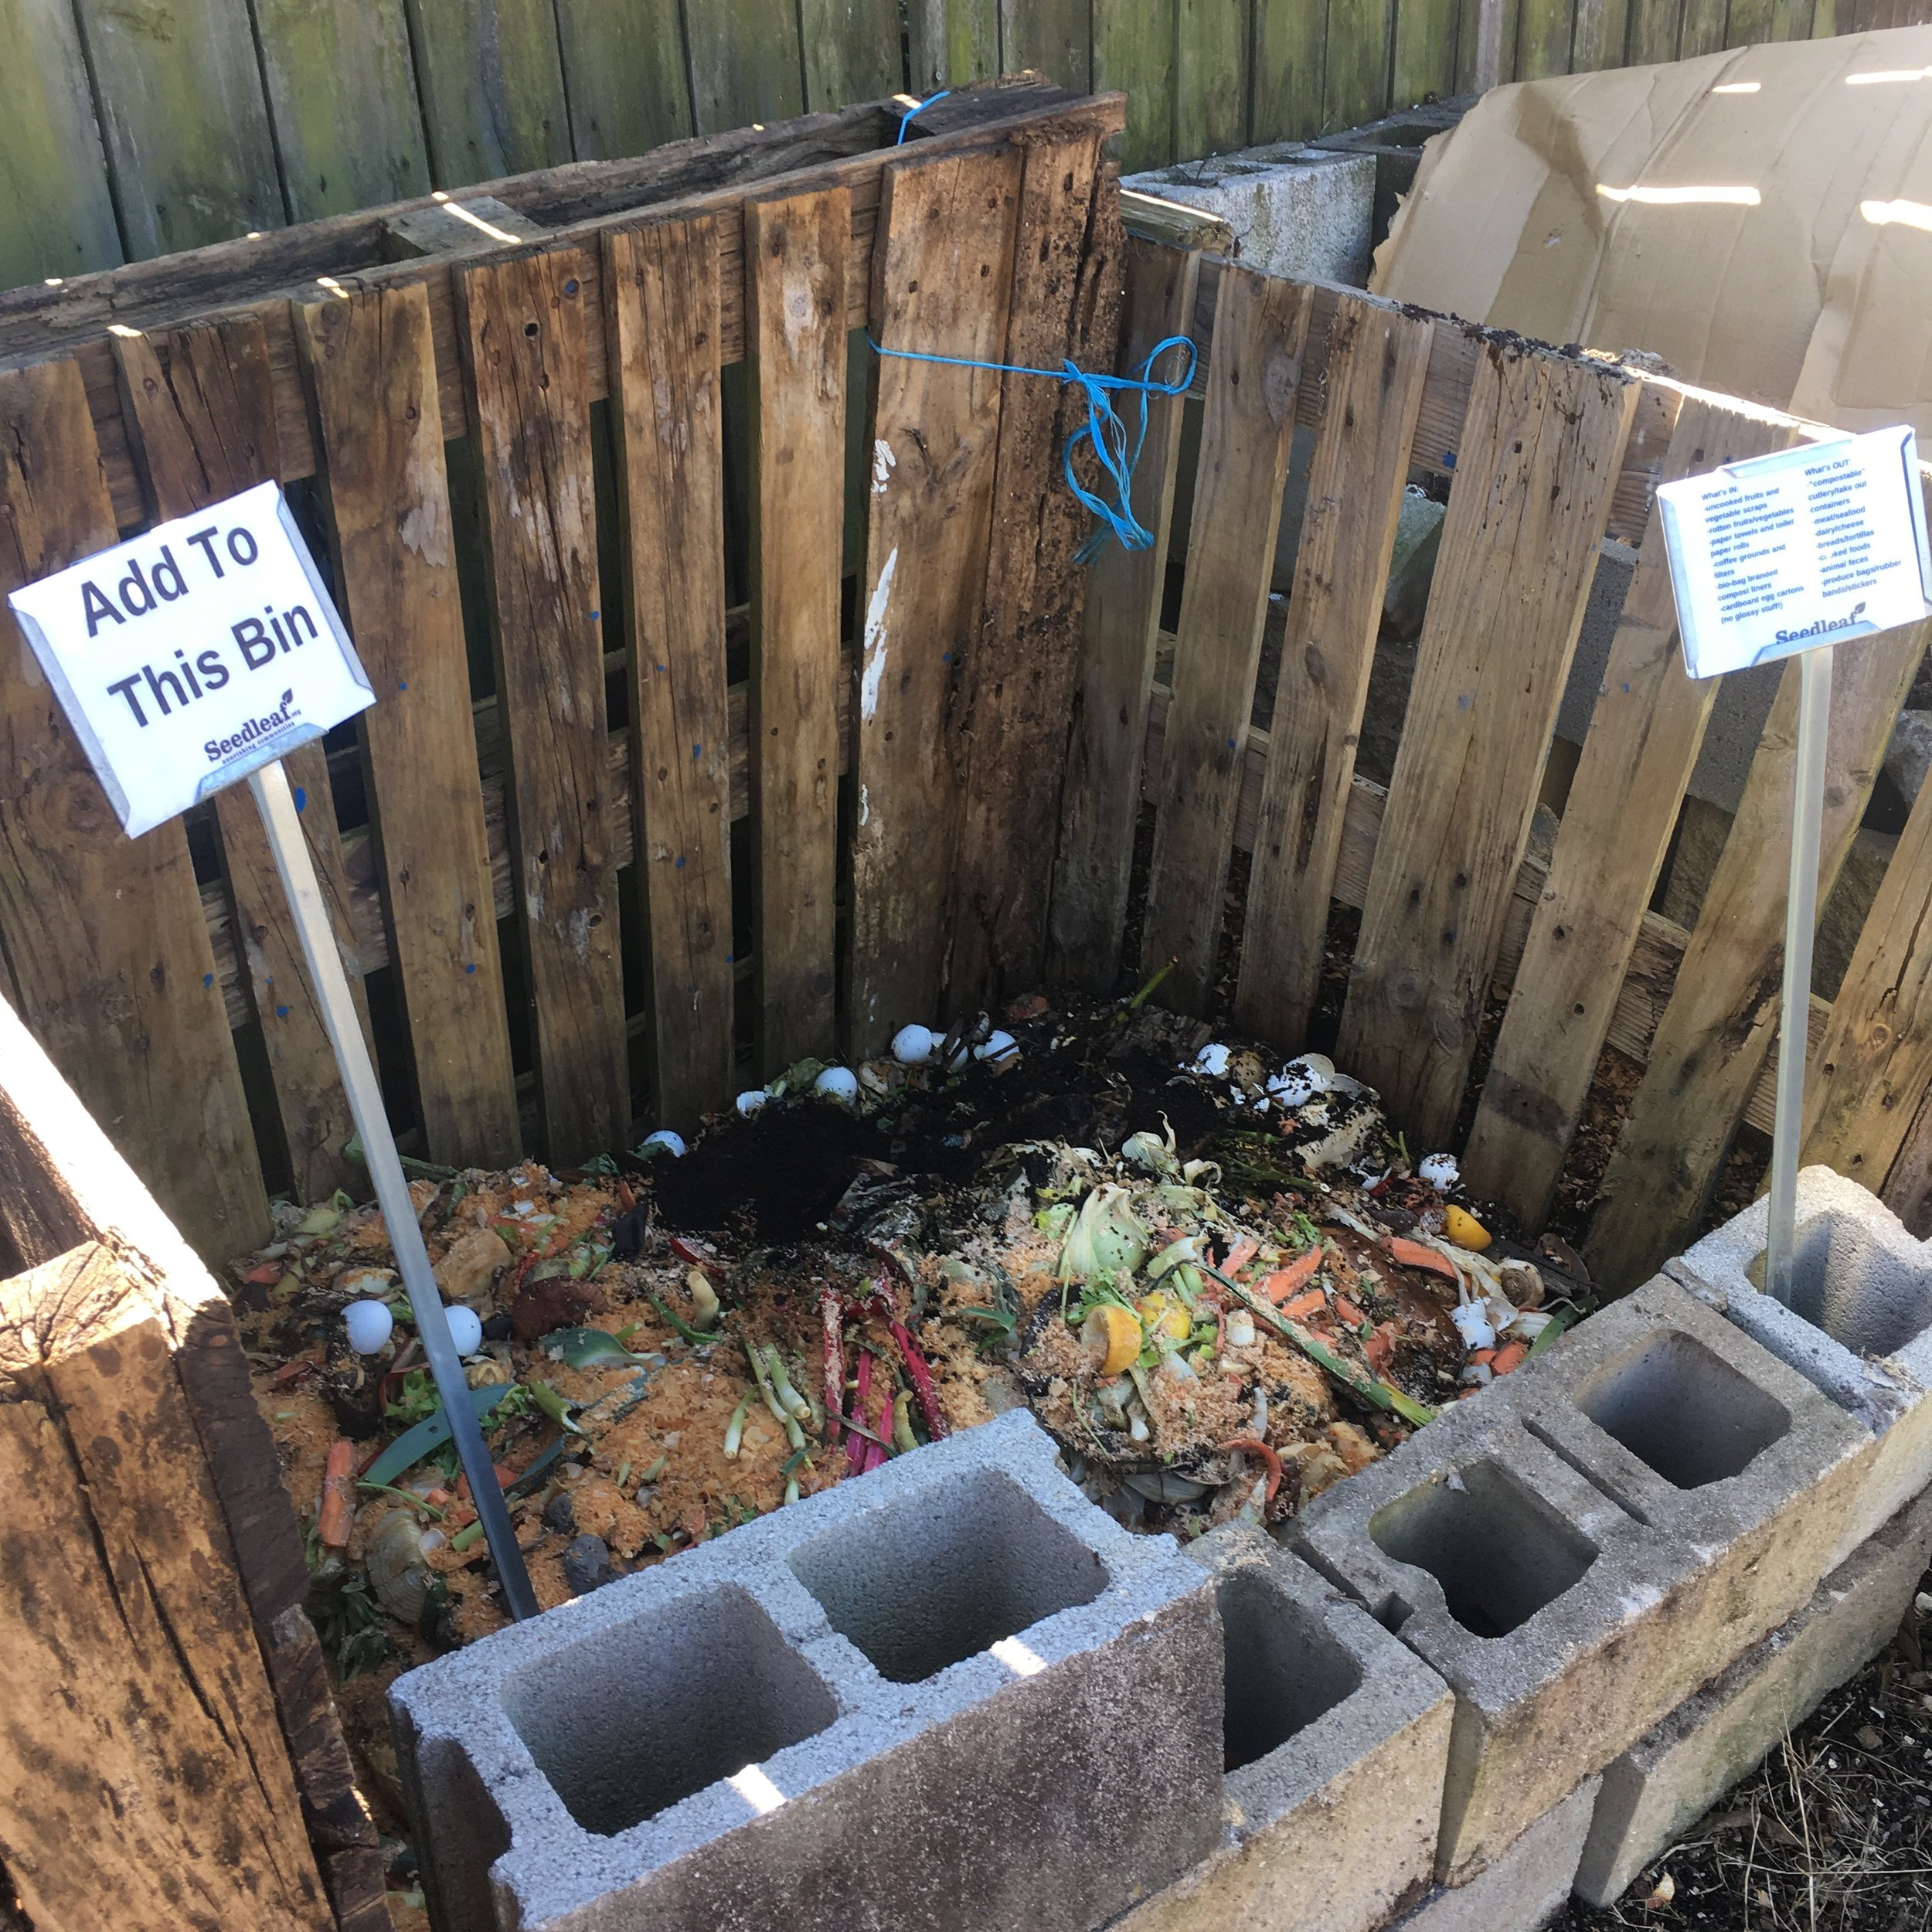 This bin is open and ready for your food waste. Just visit the North Pole Community Garden at 909 North Limestone, a space owned by the NoLi CDC which we help maintain.